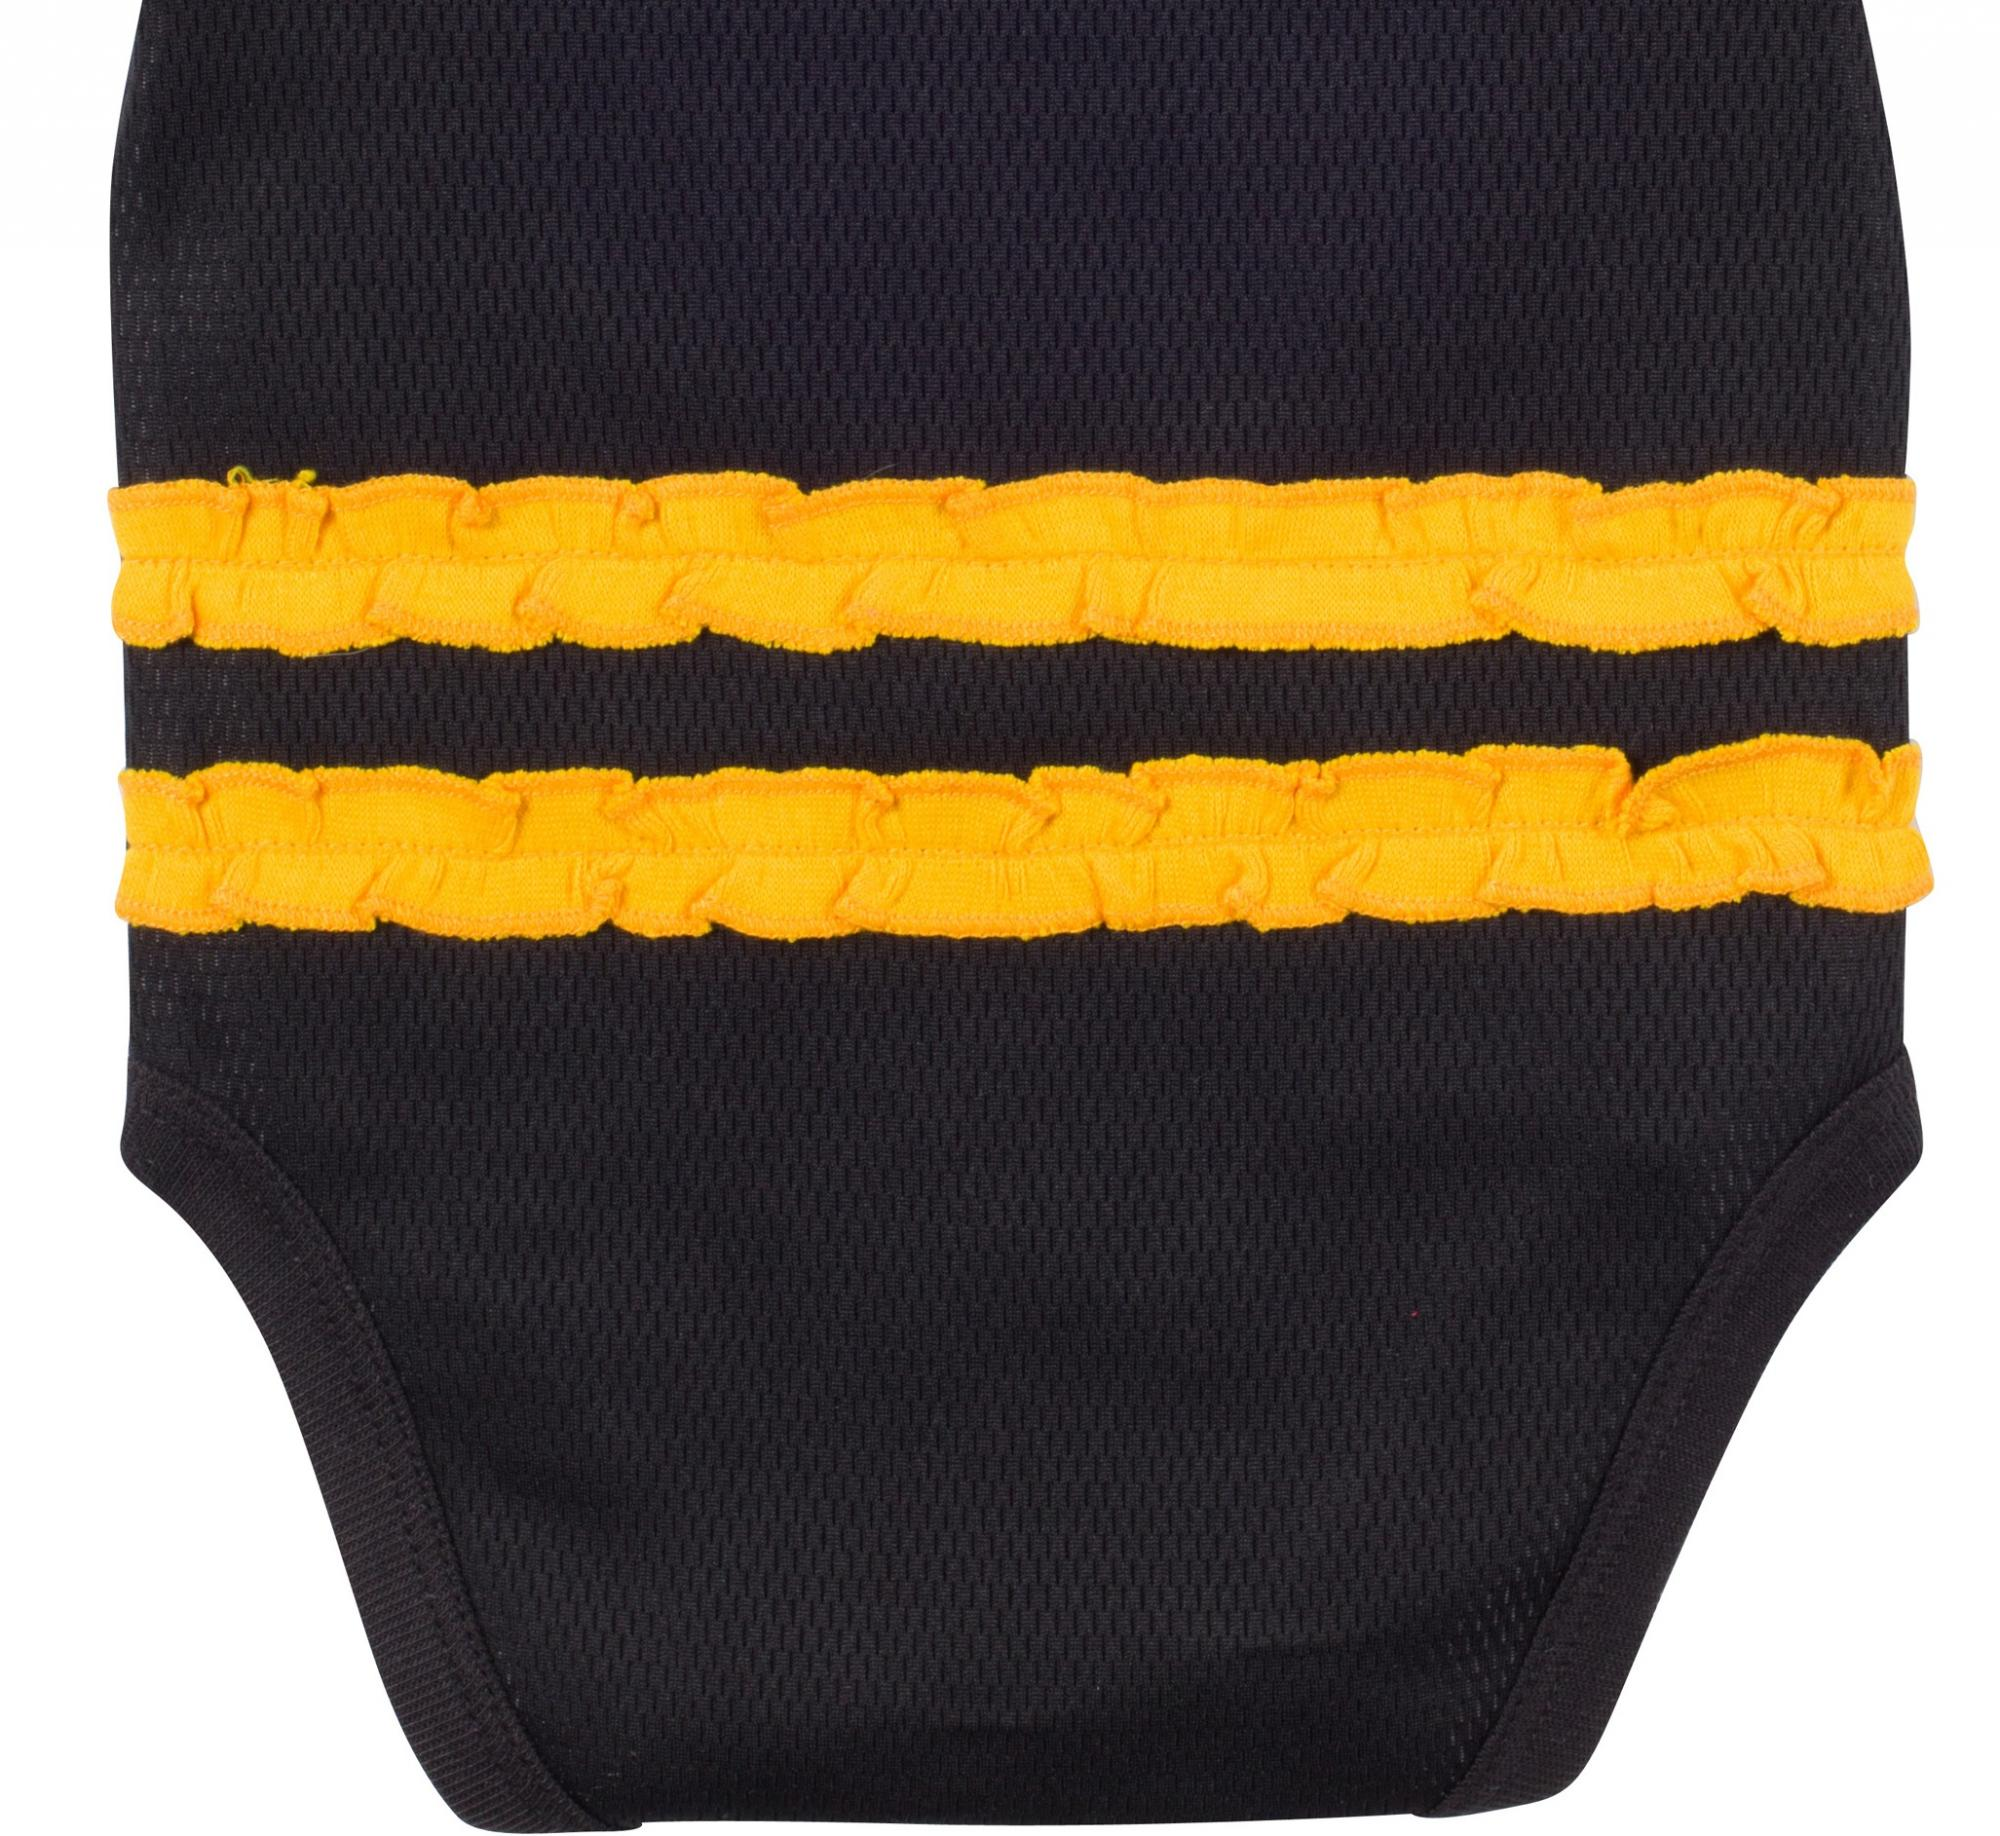 steelers-baby-rufflebutt-player-jersey-bodysuit-1680-back-close.jpg